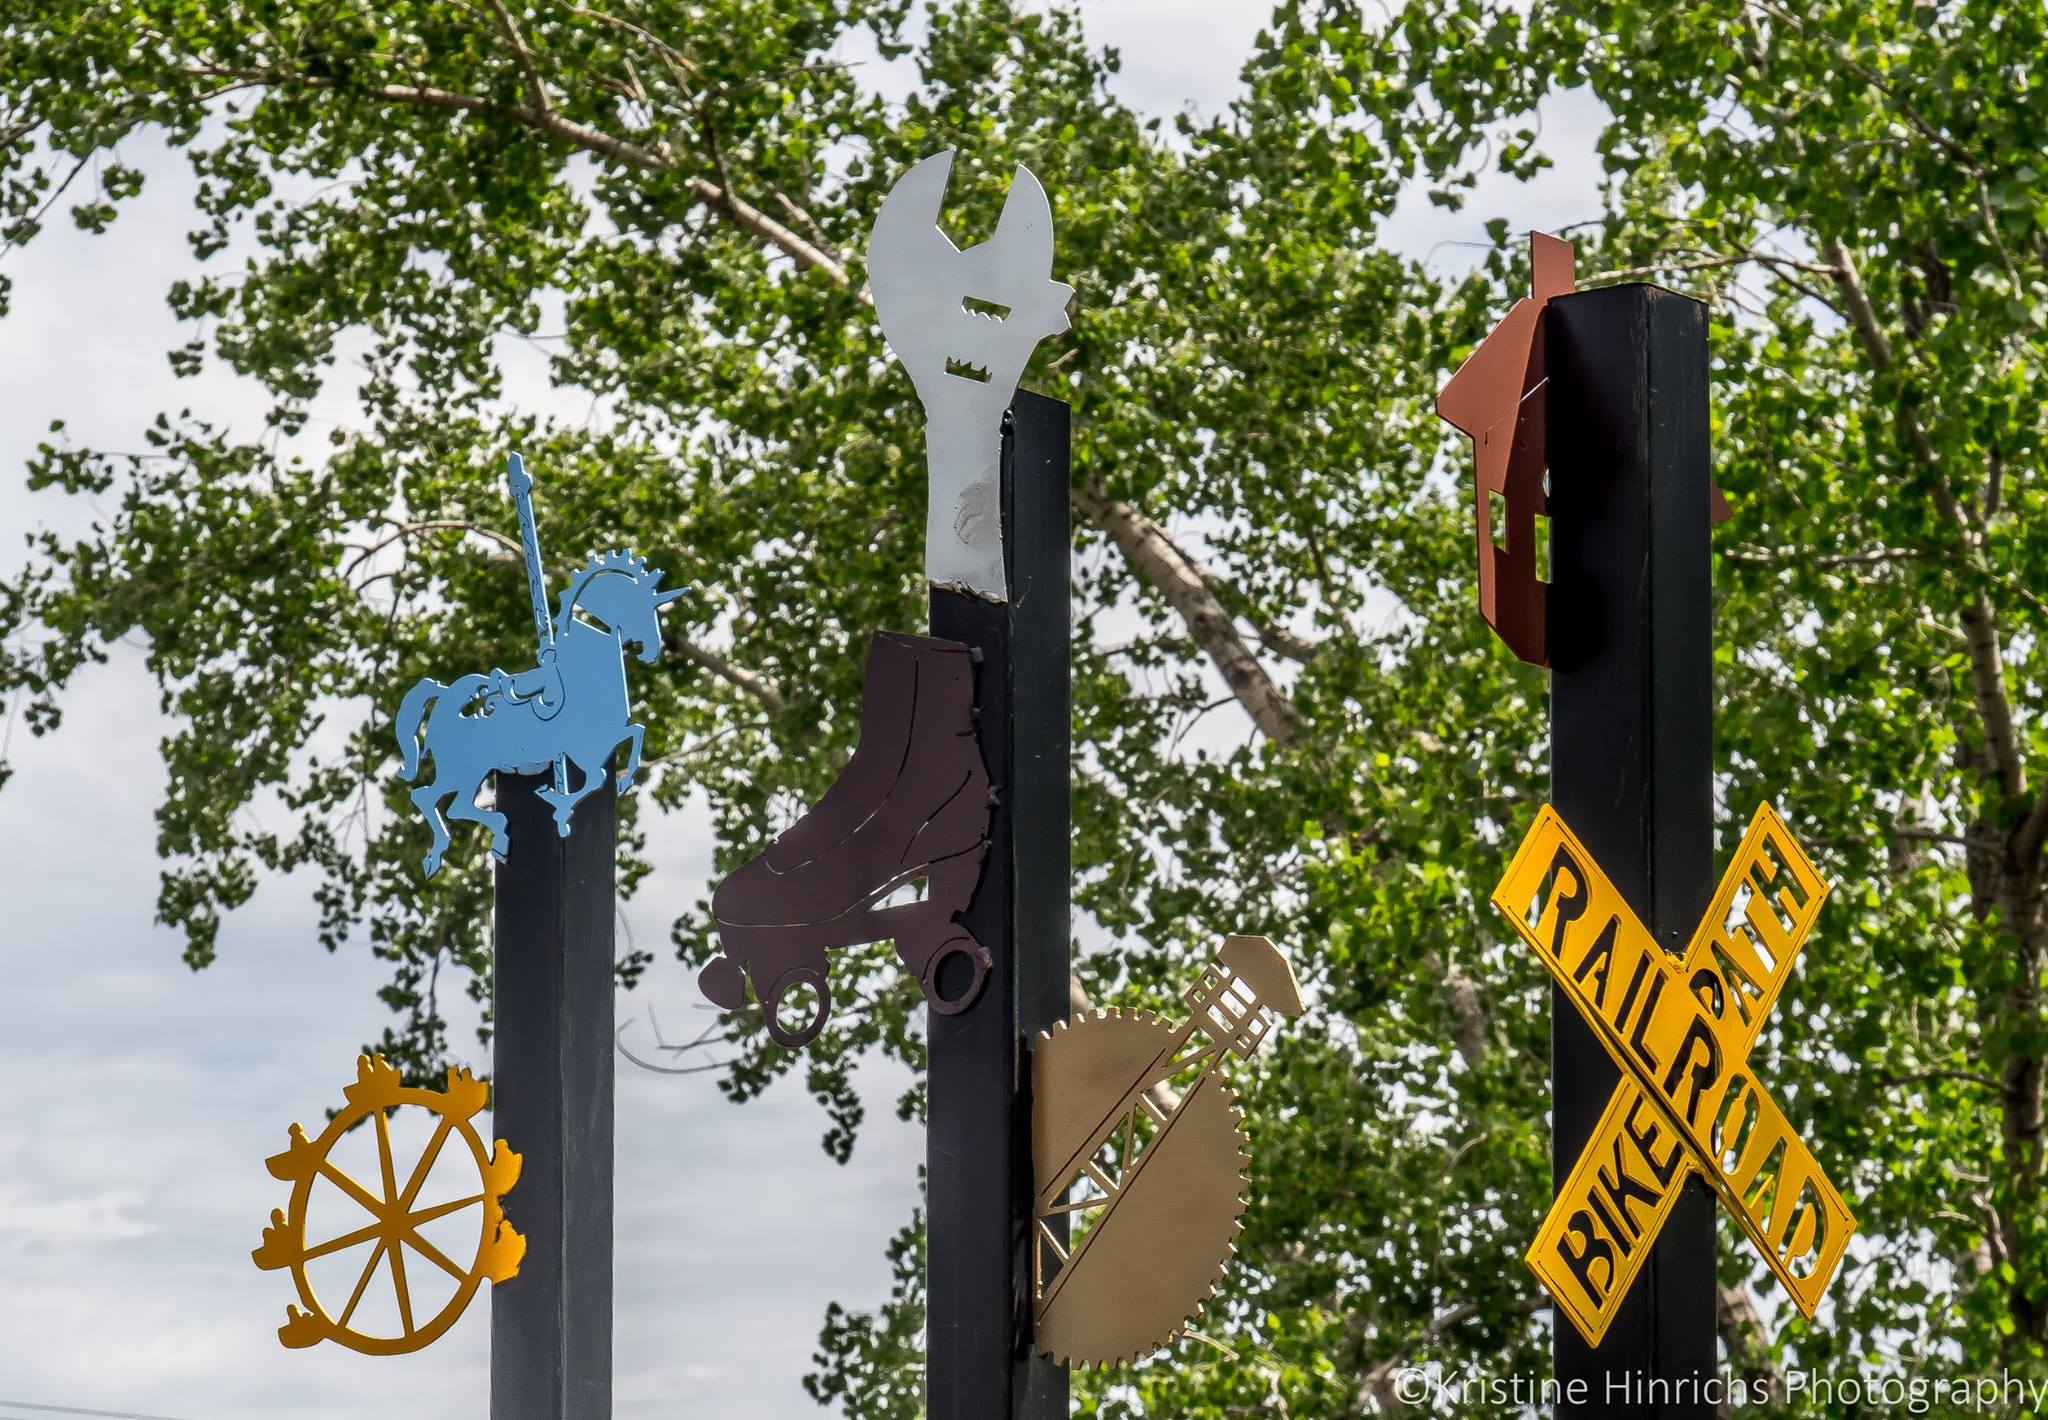 Provide enhancements   Sculptures, murals, benches, signs, and other art enhance the Trail and connect users to the area's culture and history.  Photo: Kristine Hinrichs Photography